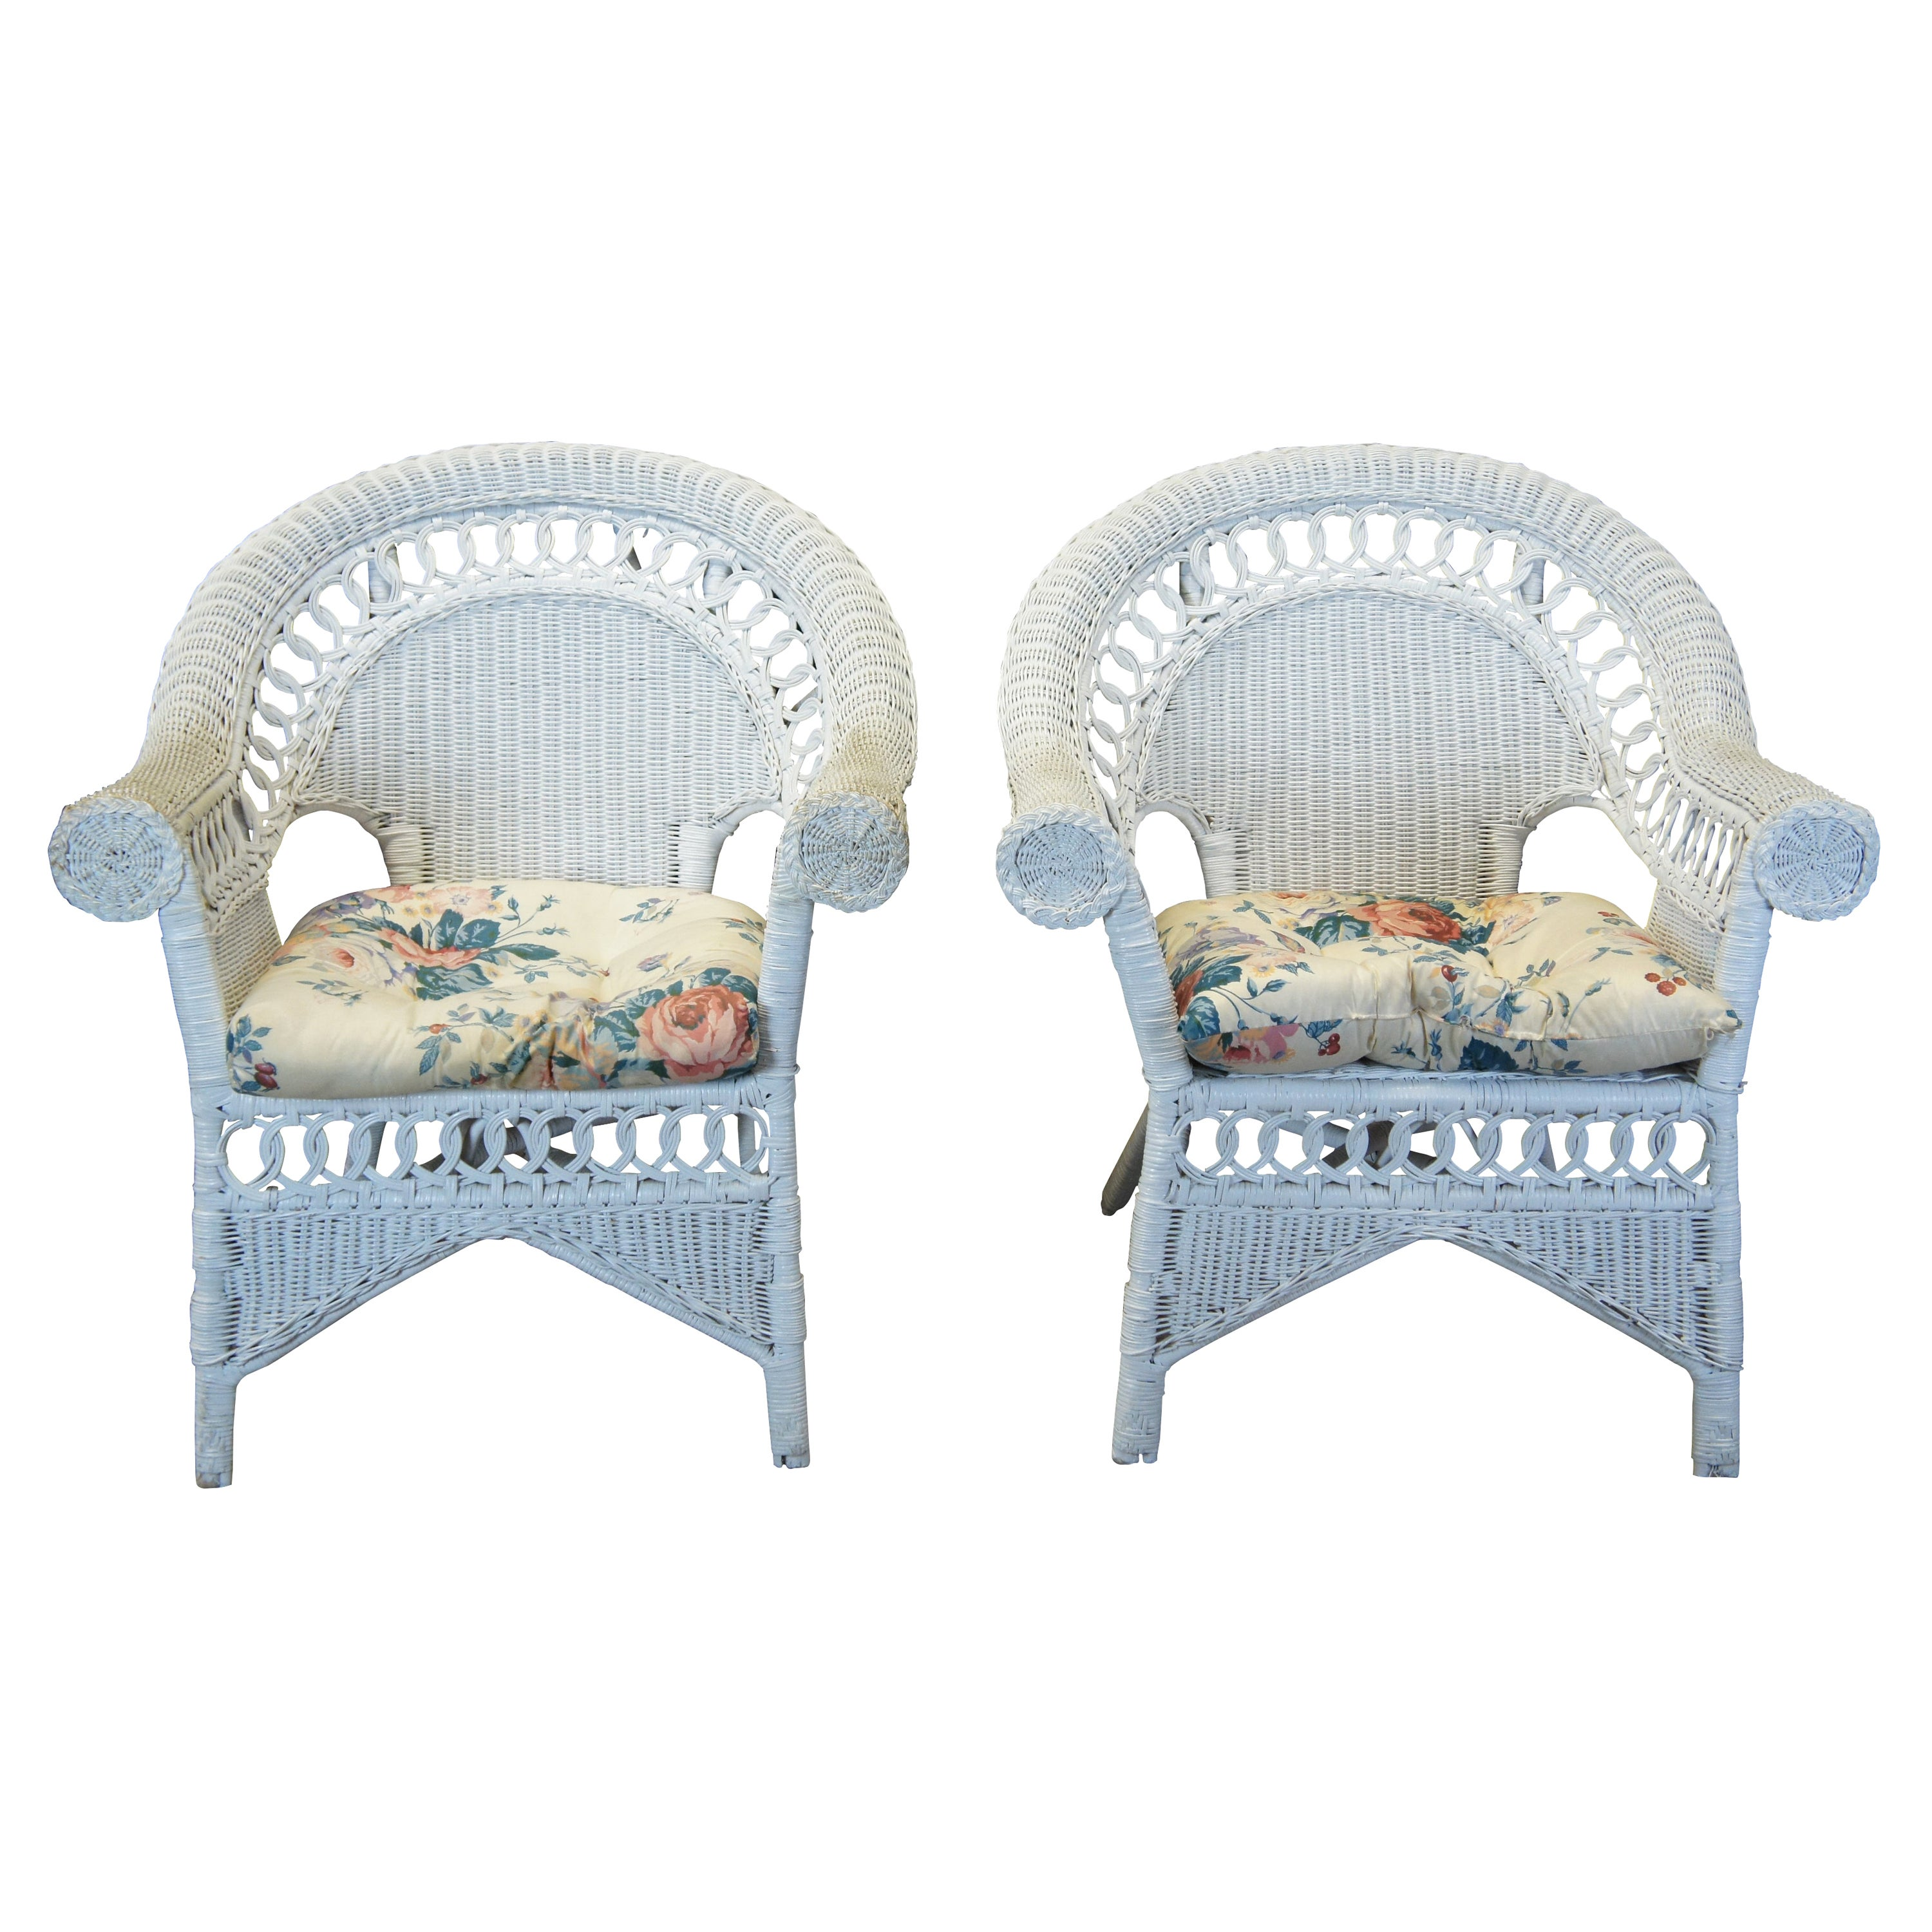 2 Vintage Wicker Bamboo Rattan Rolled Club Arm Chairs White Painted Boho Chic